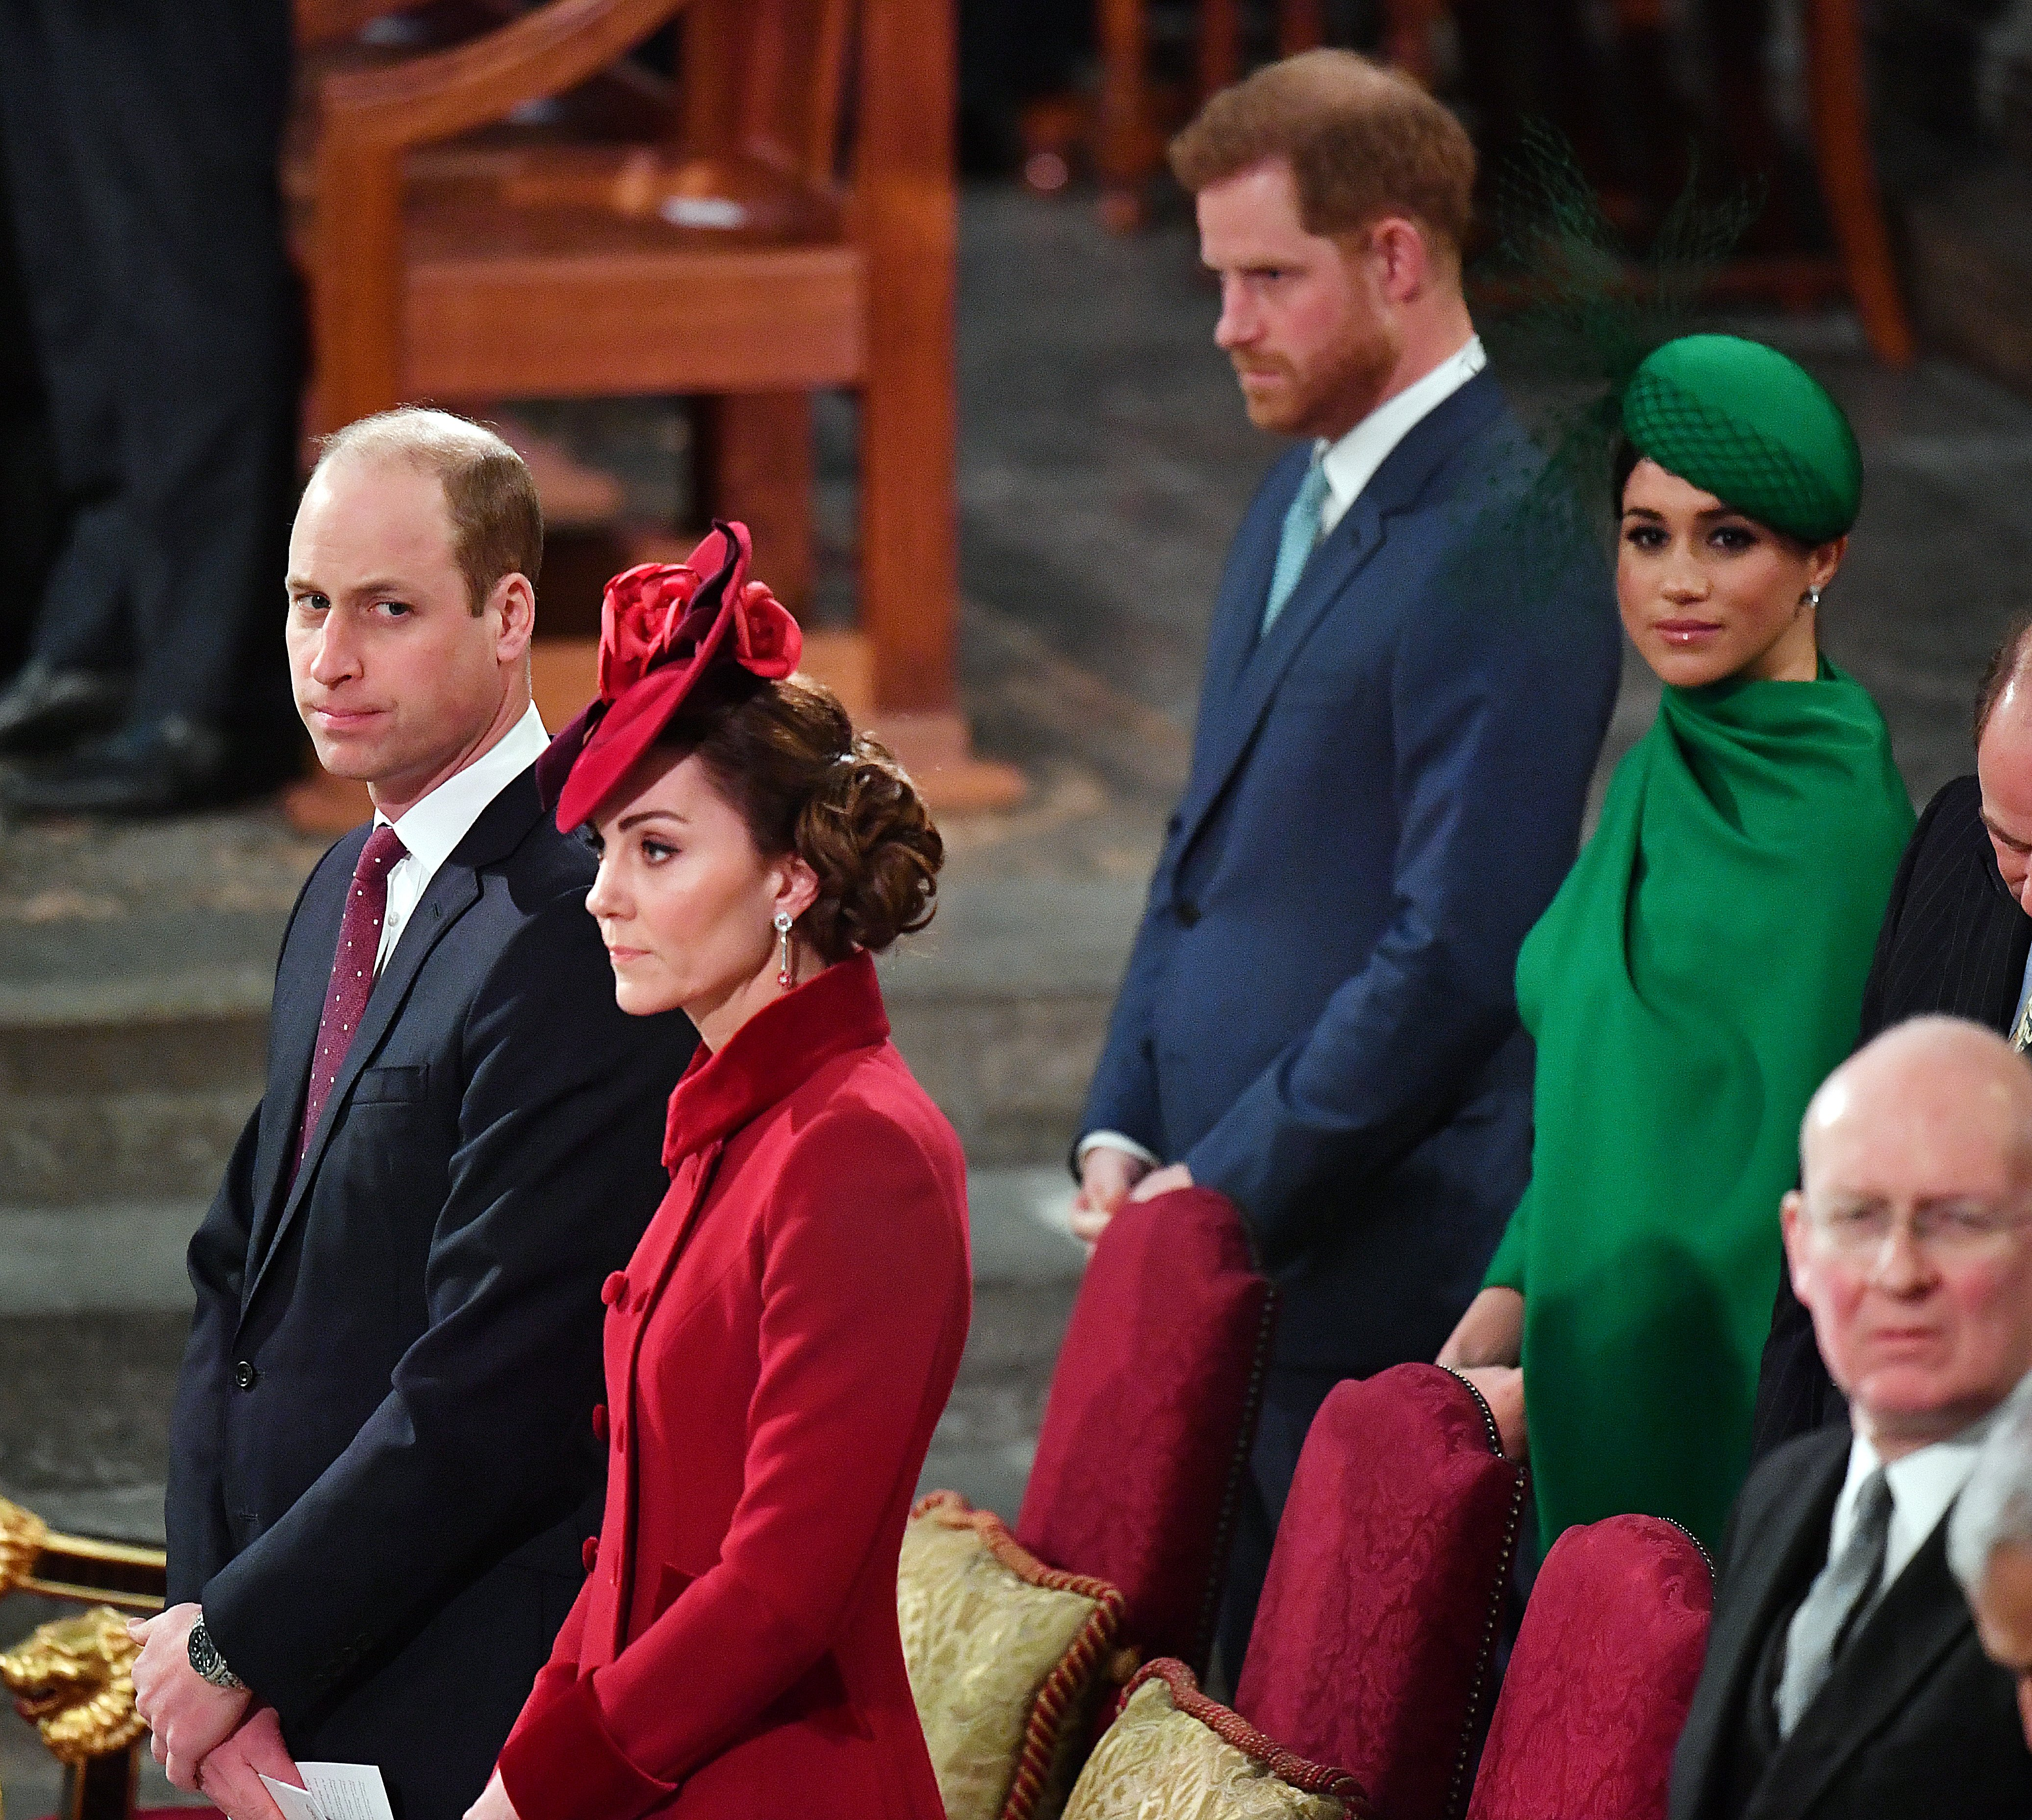 Prince William, Duchess Kate, Prince Harry, and Duchess Meghan at the Commonwealth Day Service on March 9, 2020, in London, England. | Source: Getty Images